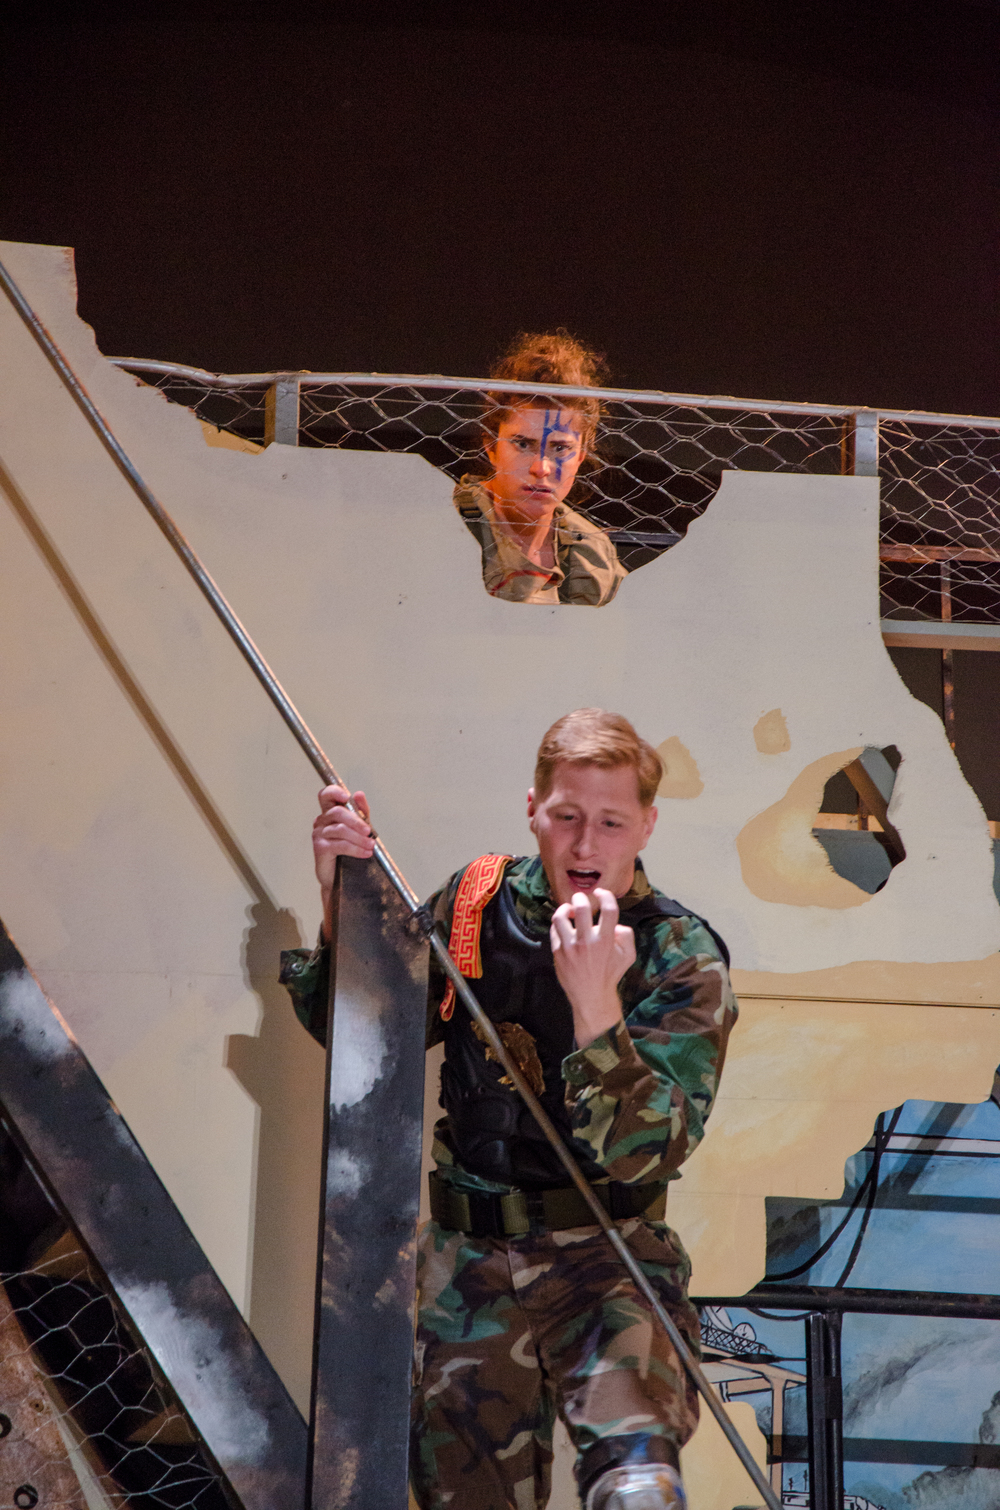 Thersites (Hannah Gold), Troilus (Jared Calhoun)